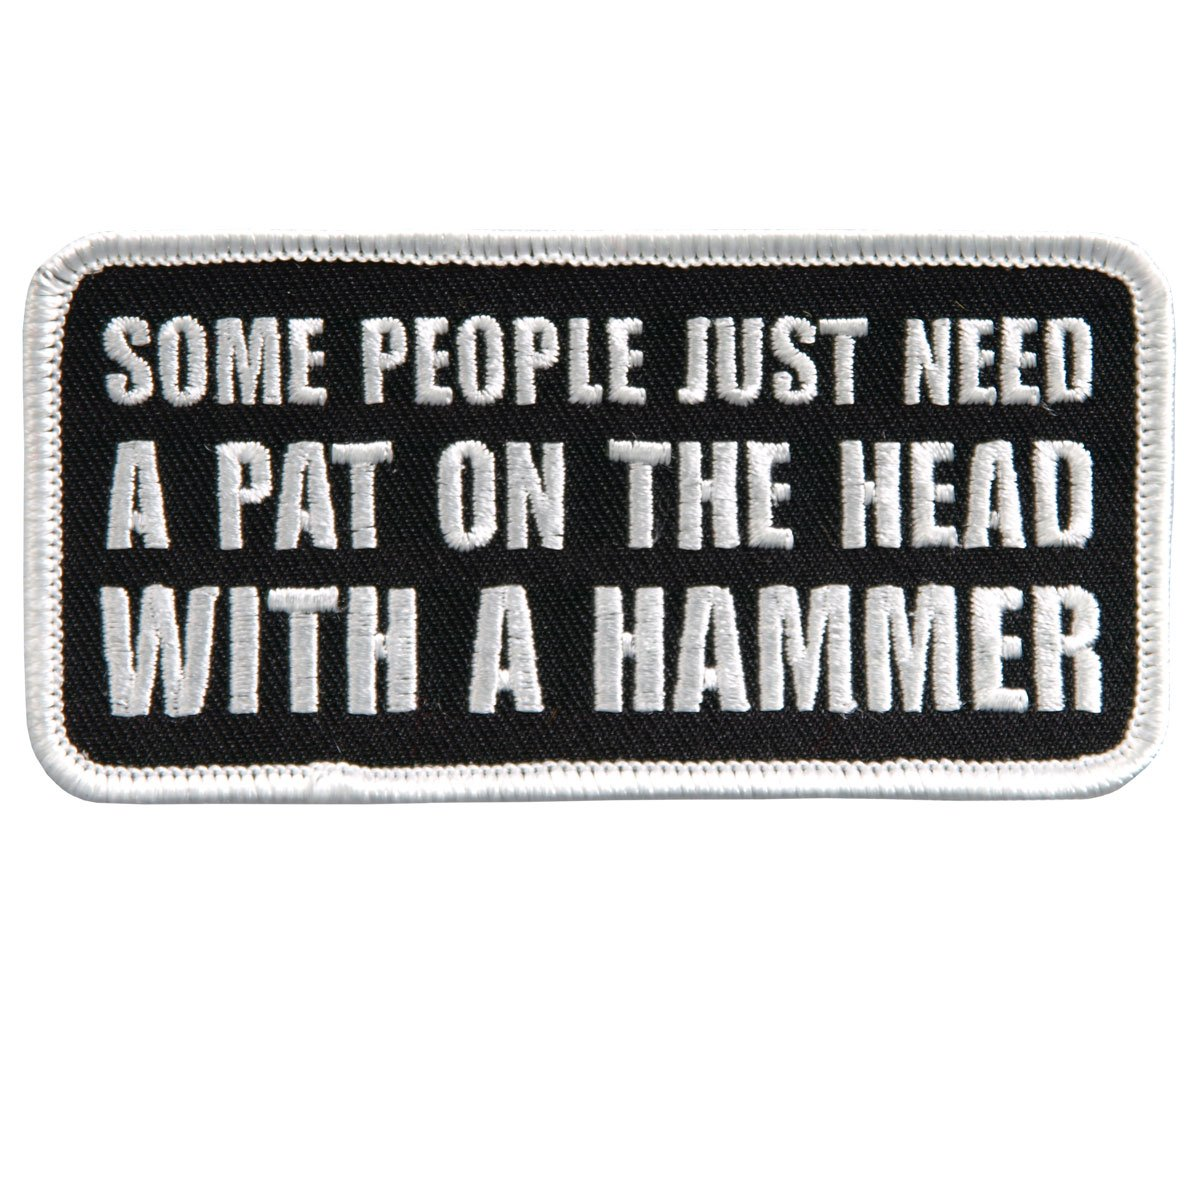 Hot Leathers, SOME PEOPLE JUST NEED A PAT IN THE HEAD WITH A HAMMER, Iron-On / Saw-On Rayon PATCH - 4